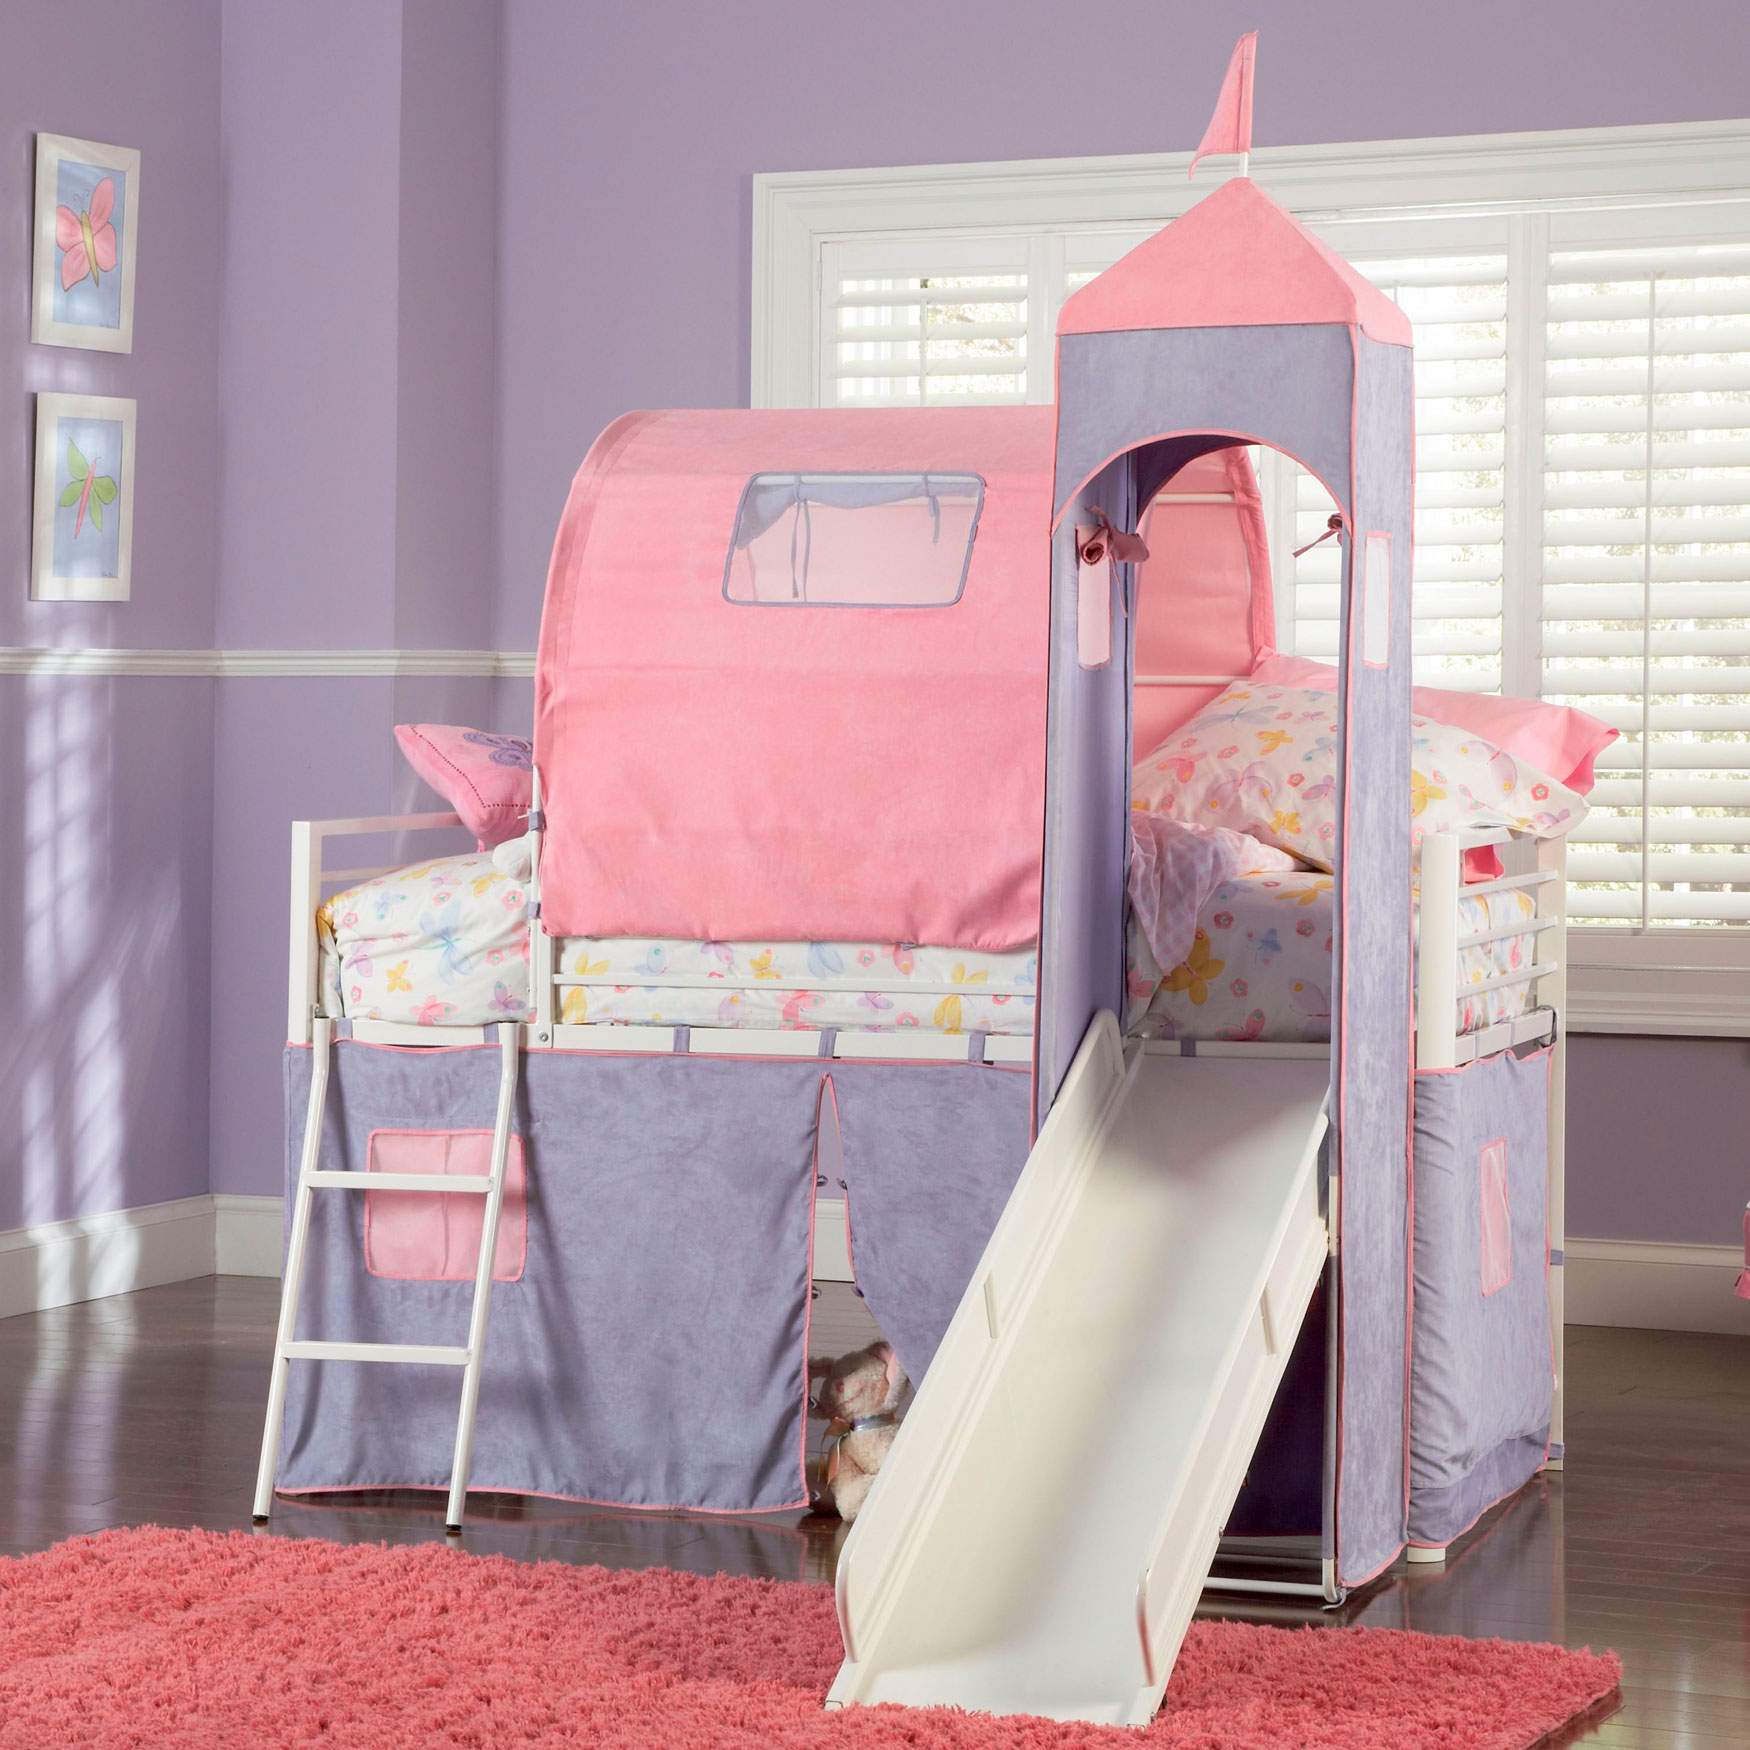 Princess Castle Twin Size Tent Bunk Bed with Slide, WHITE